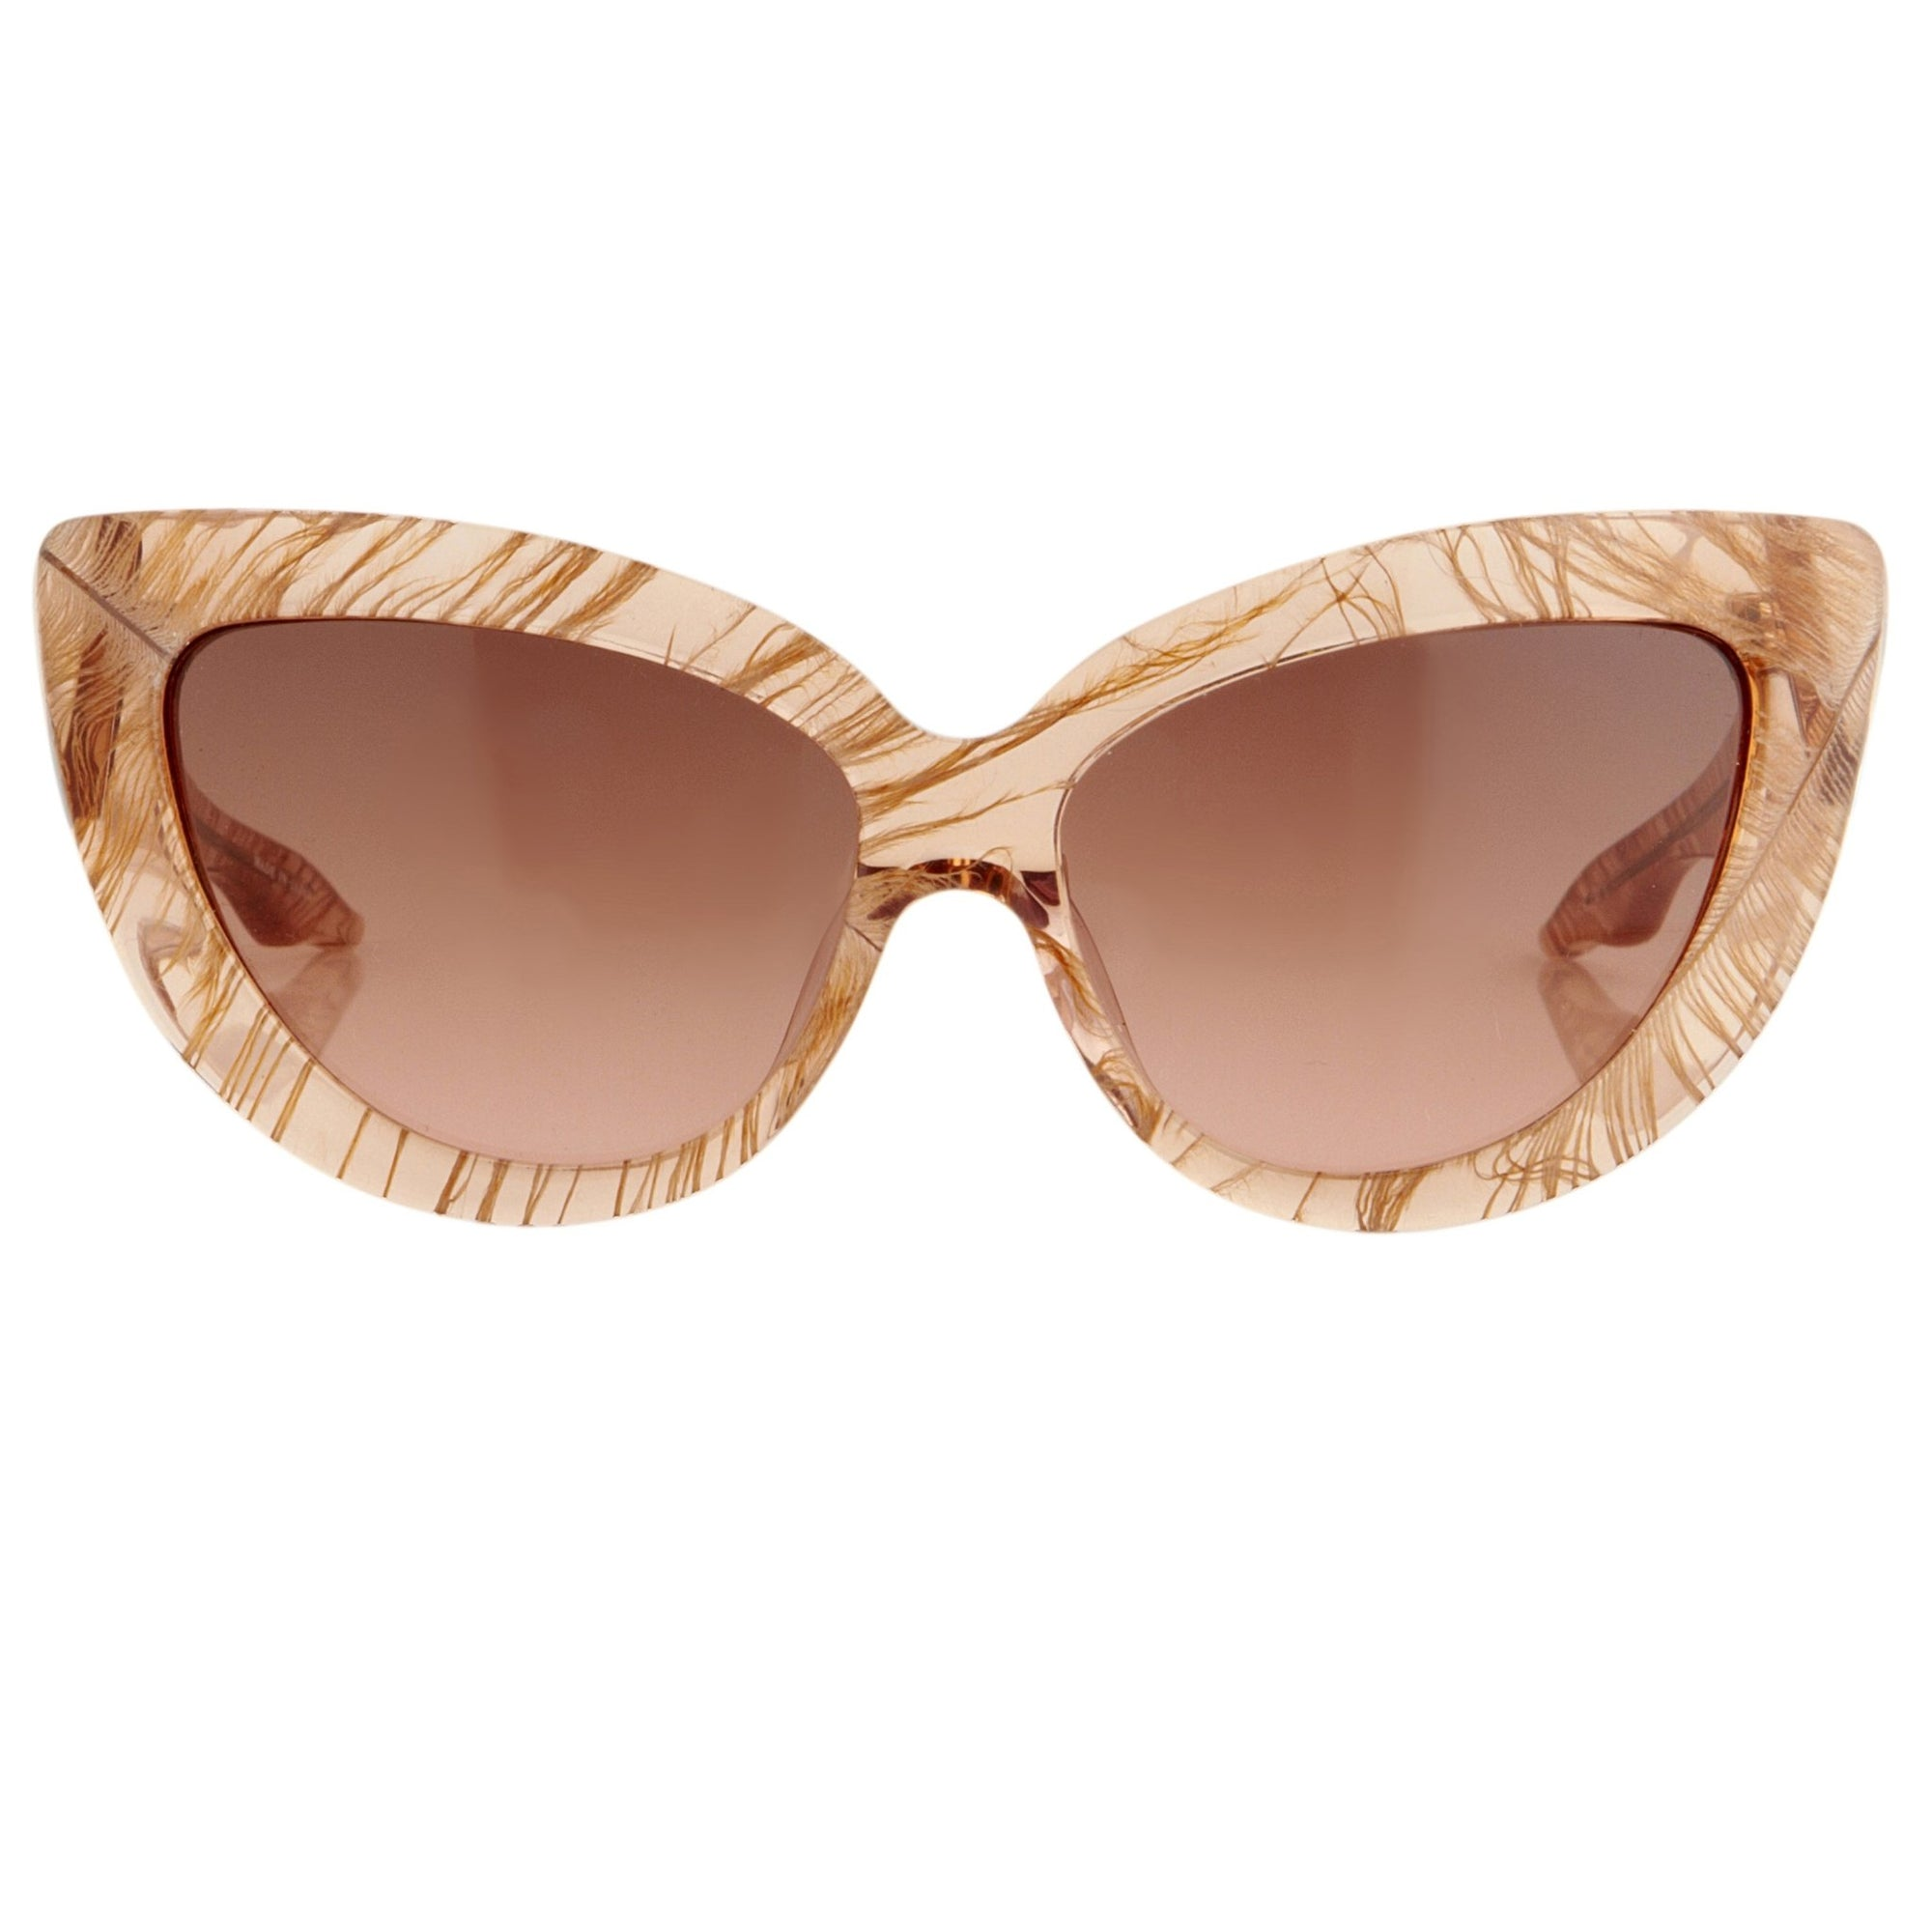 Charlotte Olympia Sunglasses Cat Eyes Peach Clear Champagne Feather CO1C3SUN - Watches & Crystals